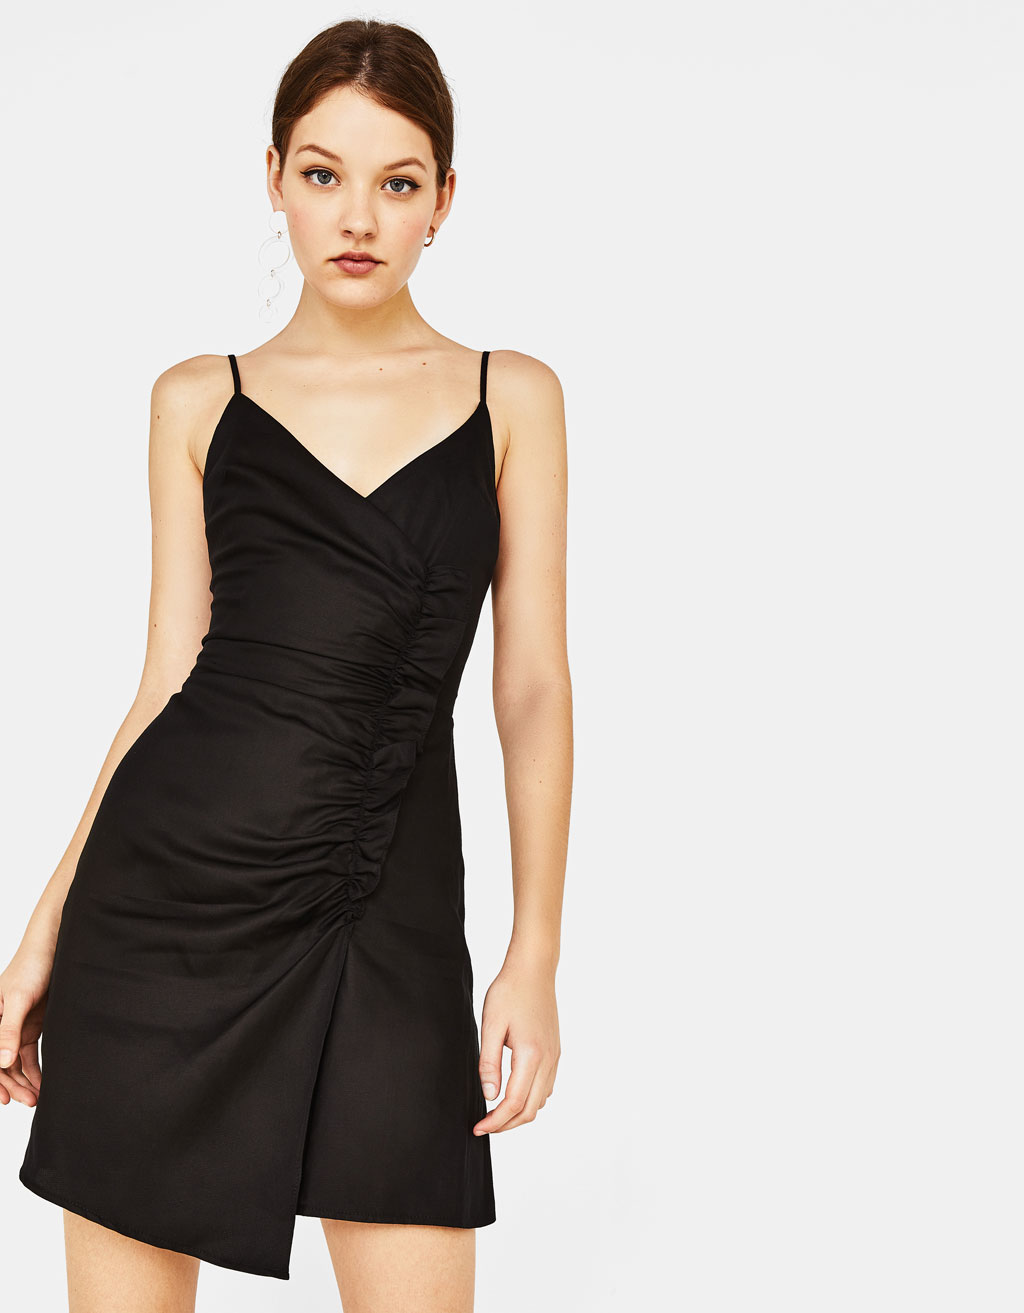 Asymmetric dress with ruffle trim